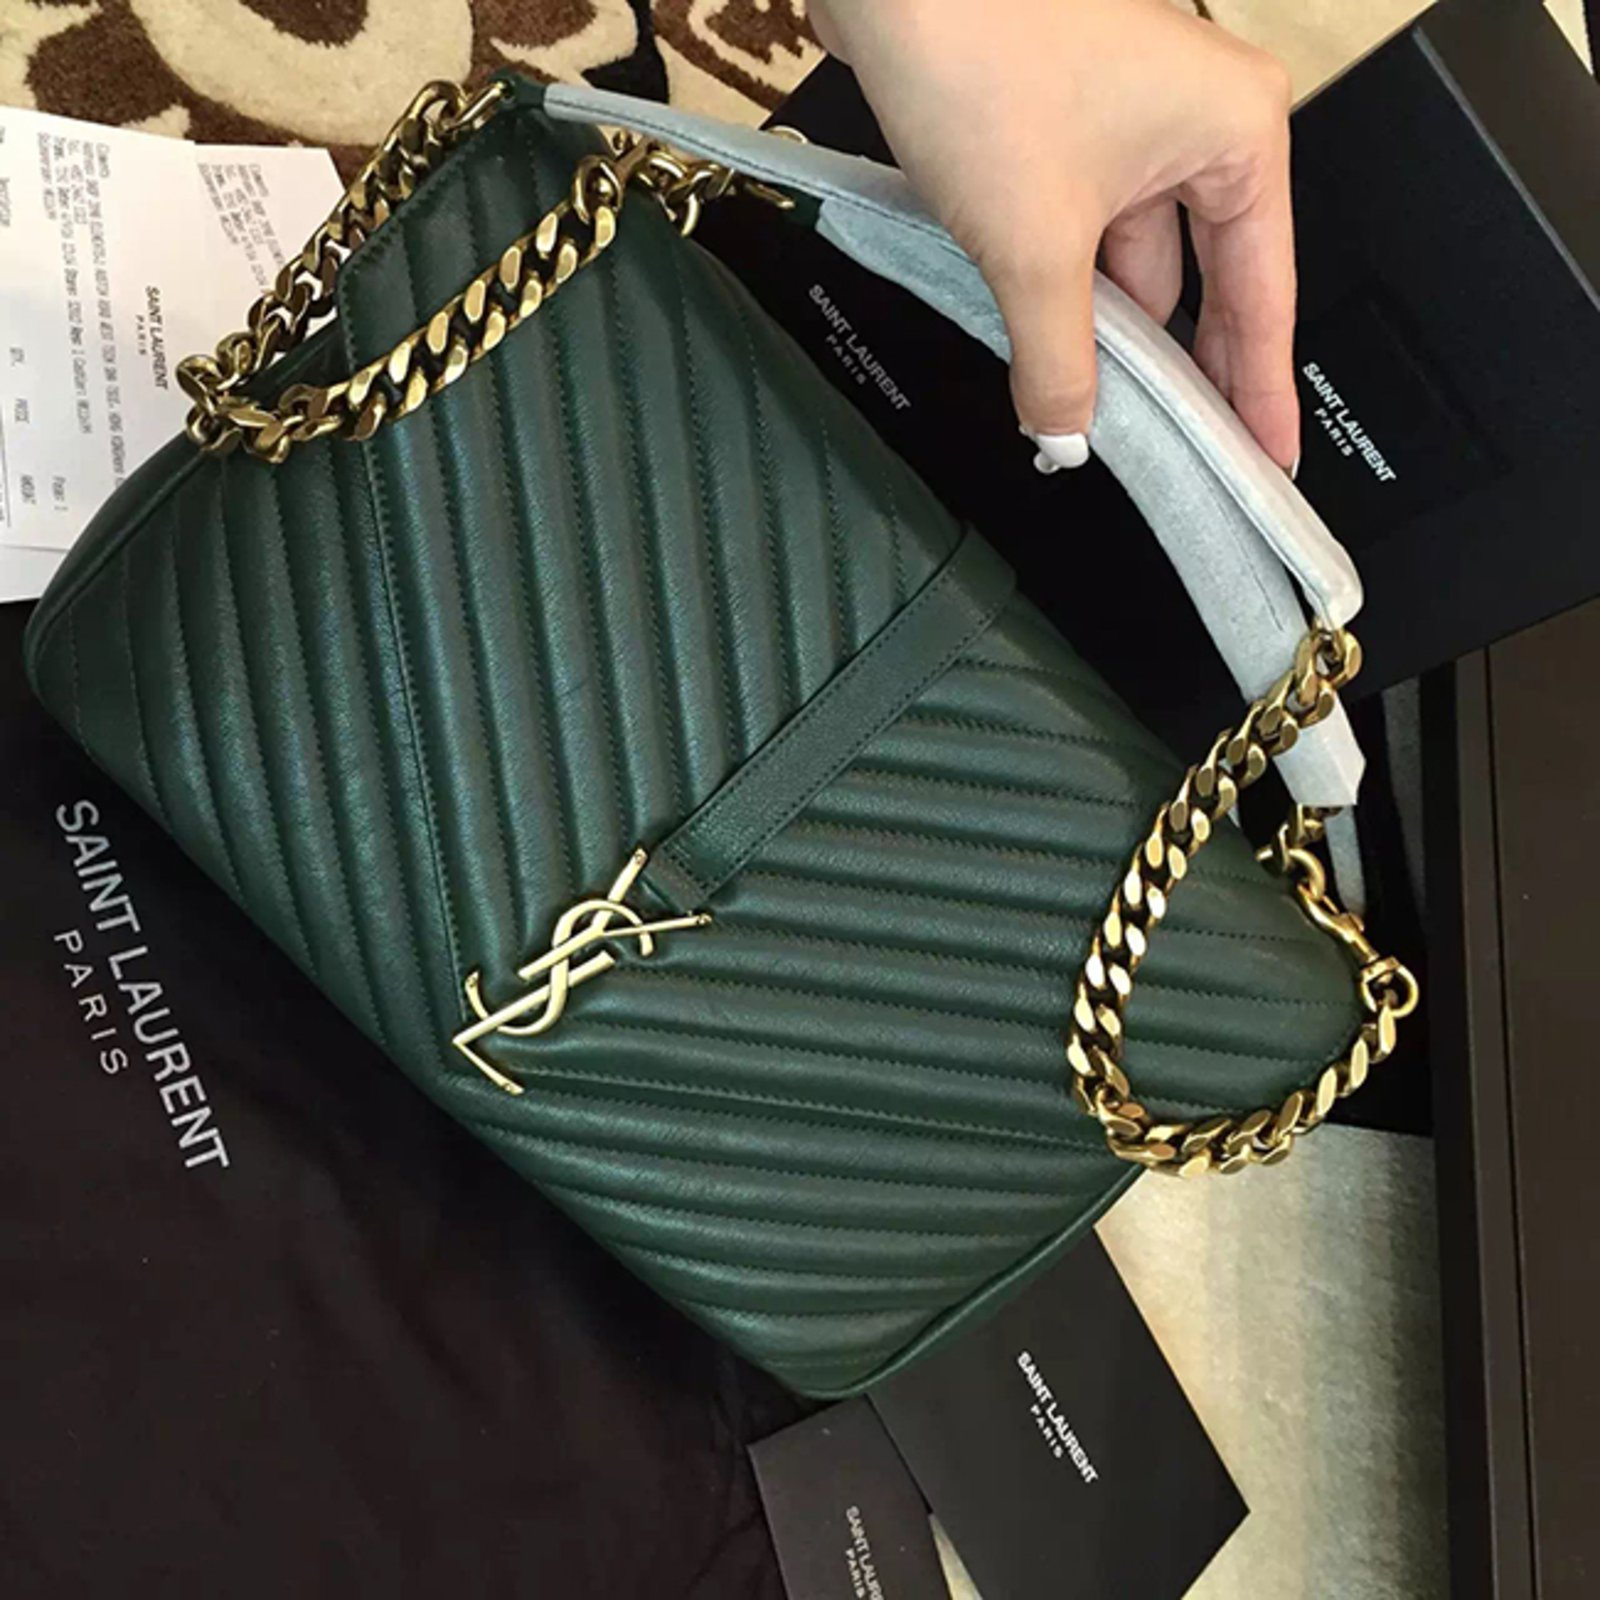 4784aec5410 Yves Saint Laurent YSL green college chain shoulder bag medium Handbags  Leather Green ref.57110 - Joli Closet